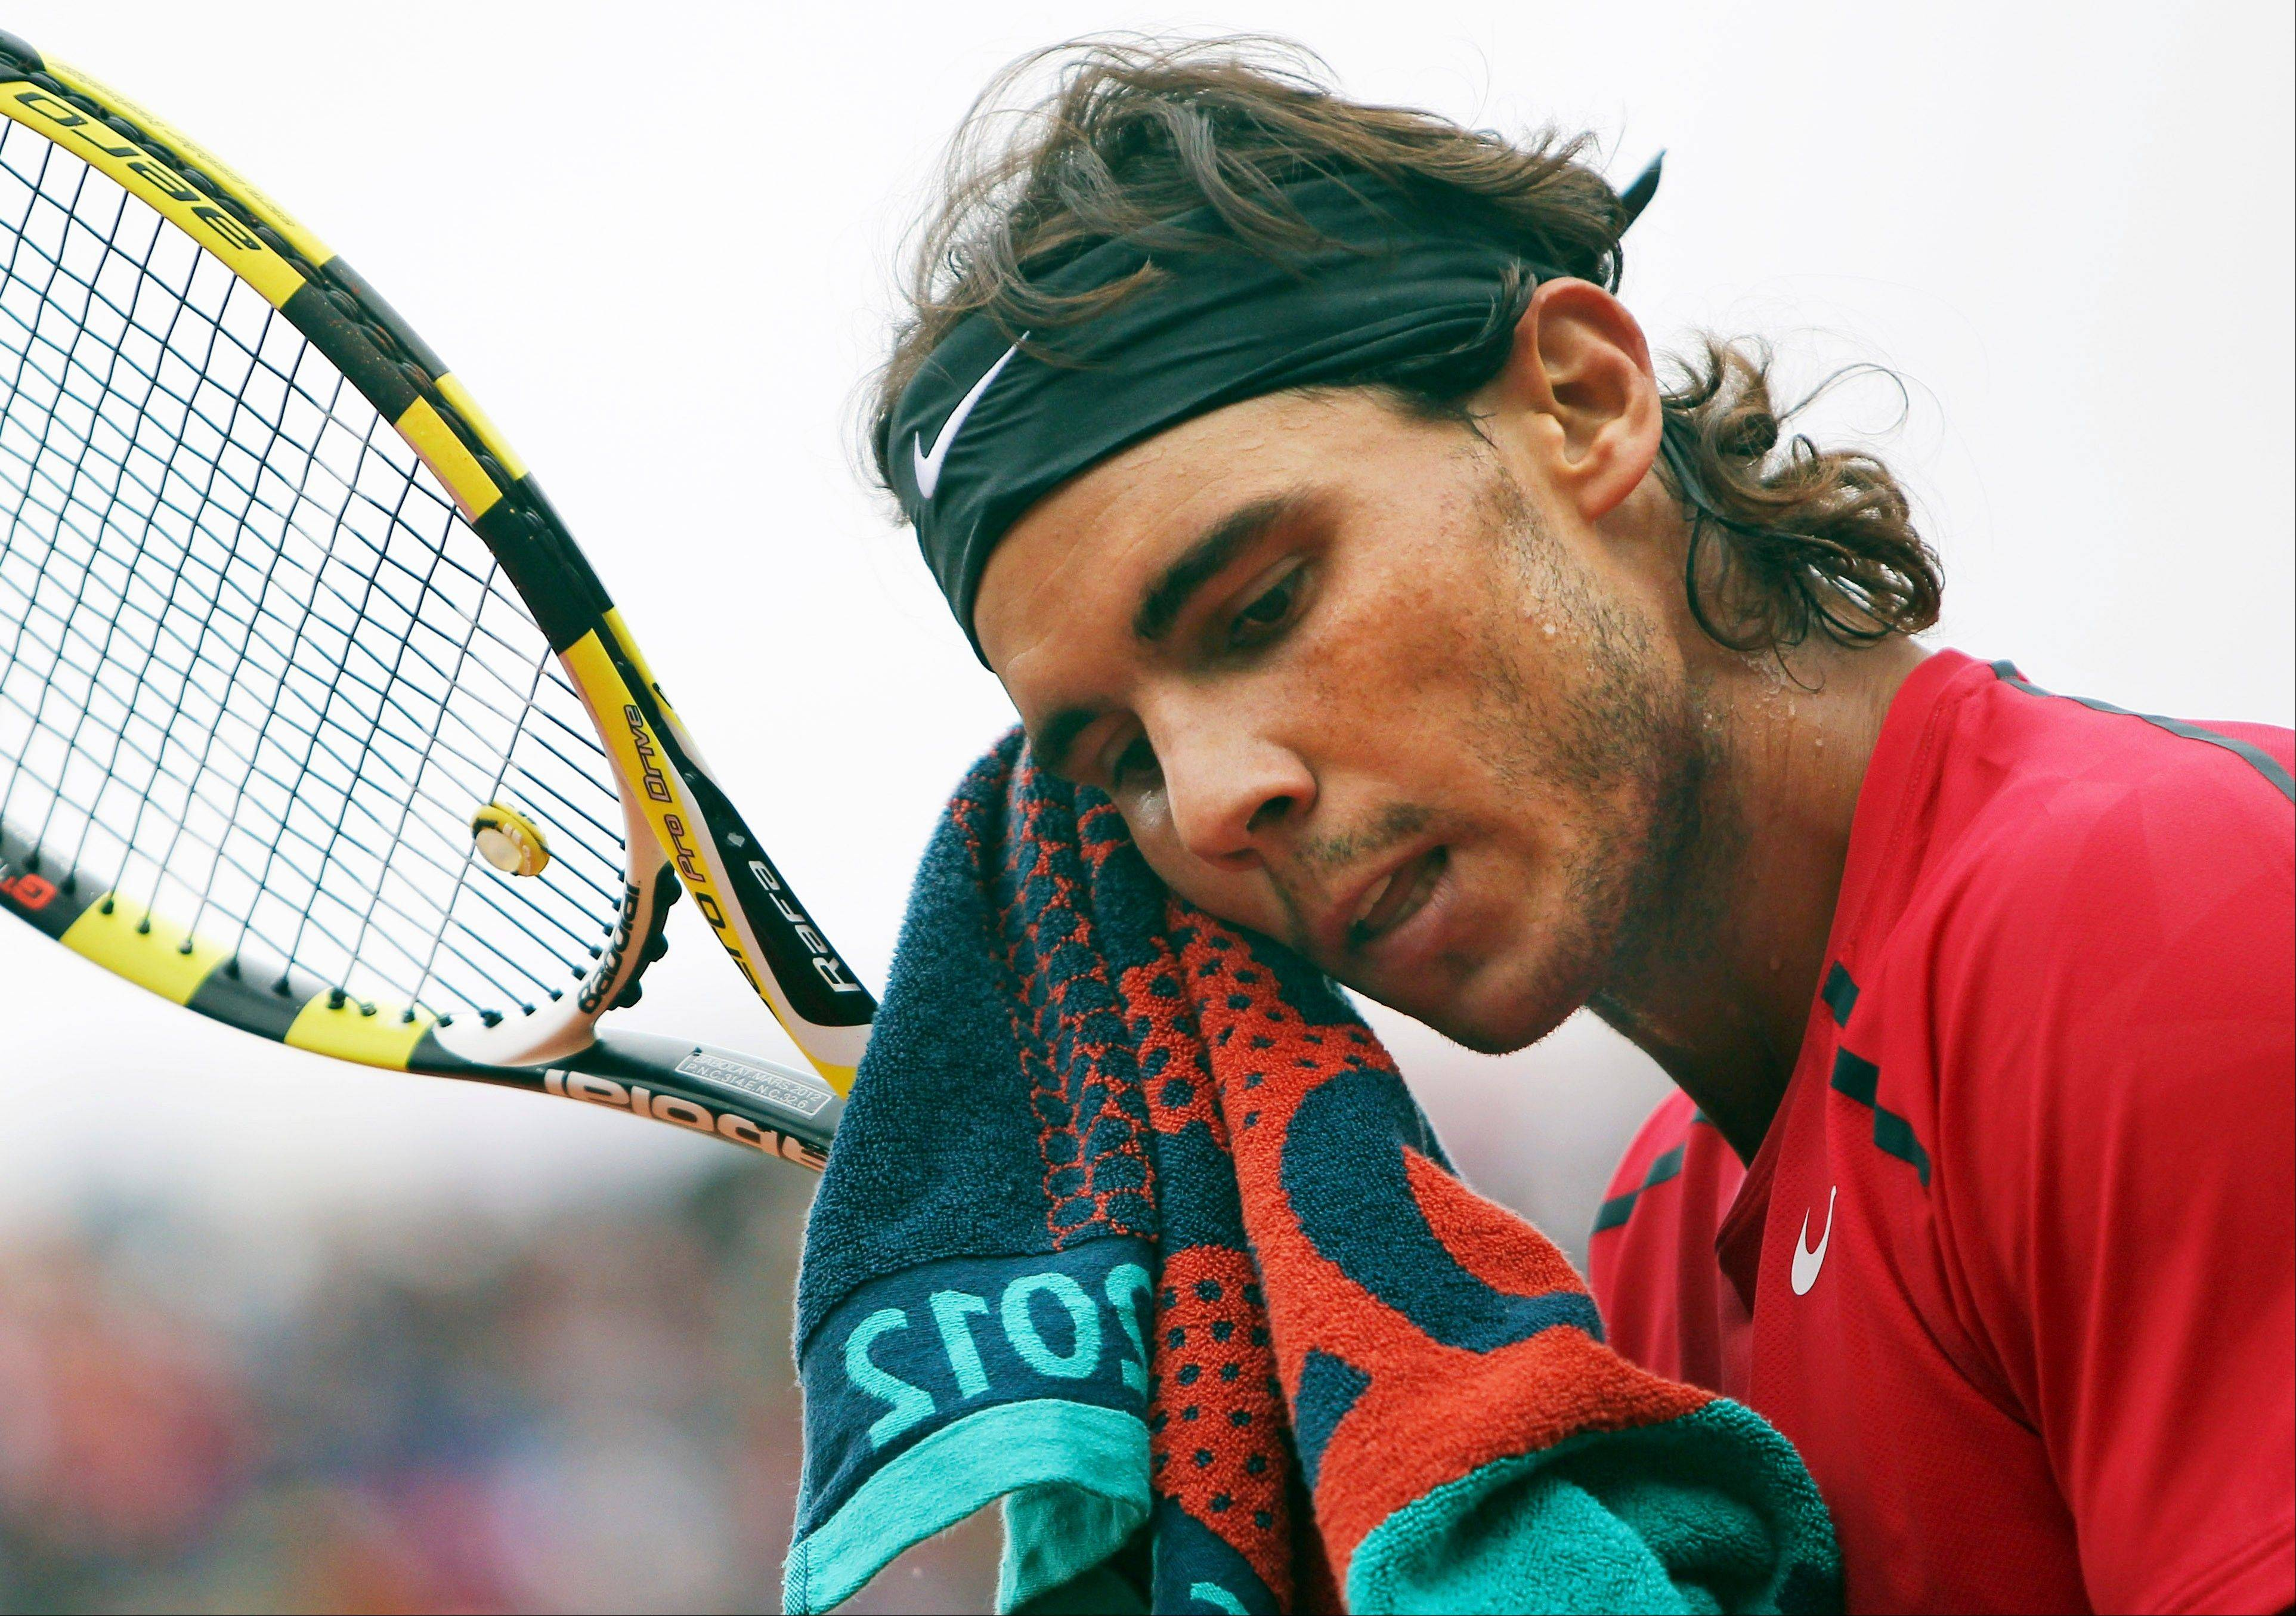 Spain's Rafael Nadal wipes his face as he plays Serbia's Novak Djokovic during their men's final match in the French Open tennis tournament. Nadal will miss the Australian Open because of a stomach virus.